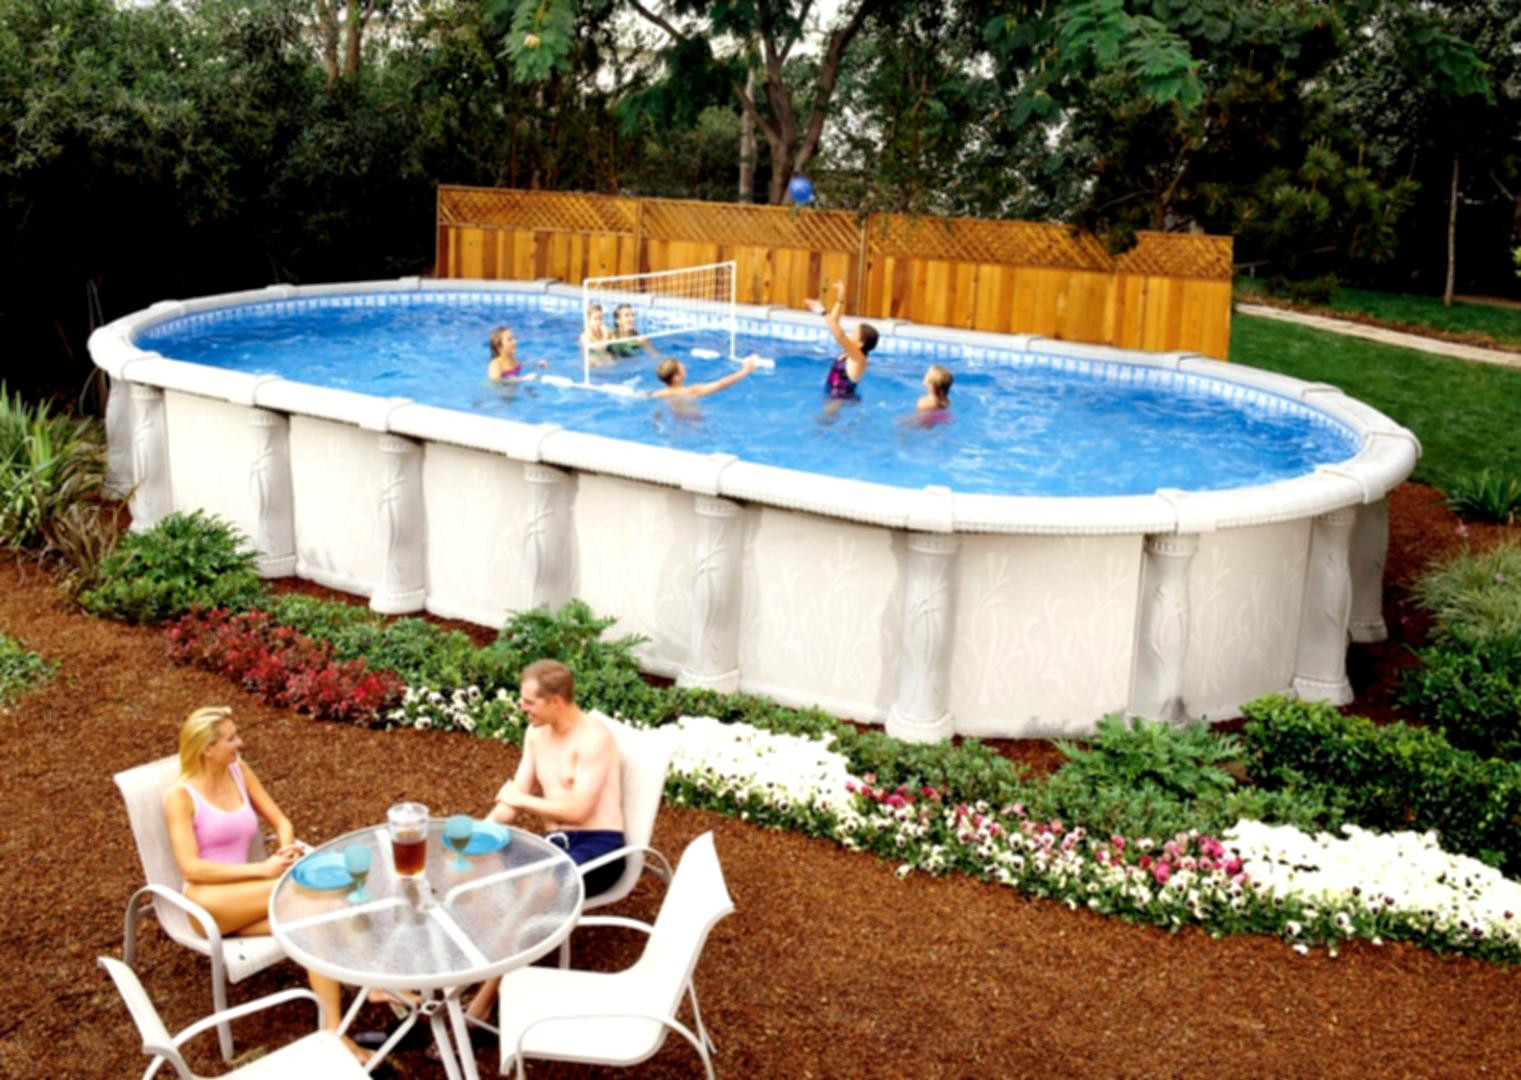 Best ideas about Above Ground Pool Installers . Save or Pin above ground swimming pool installation panies Now.